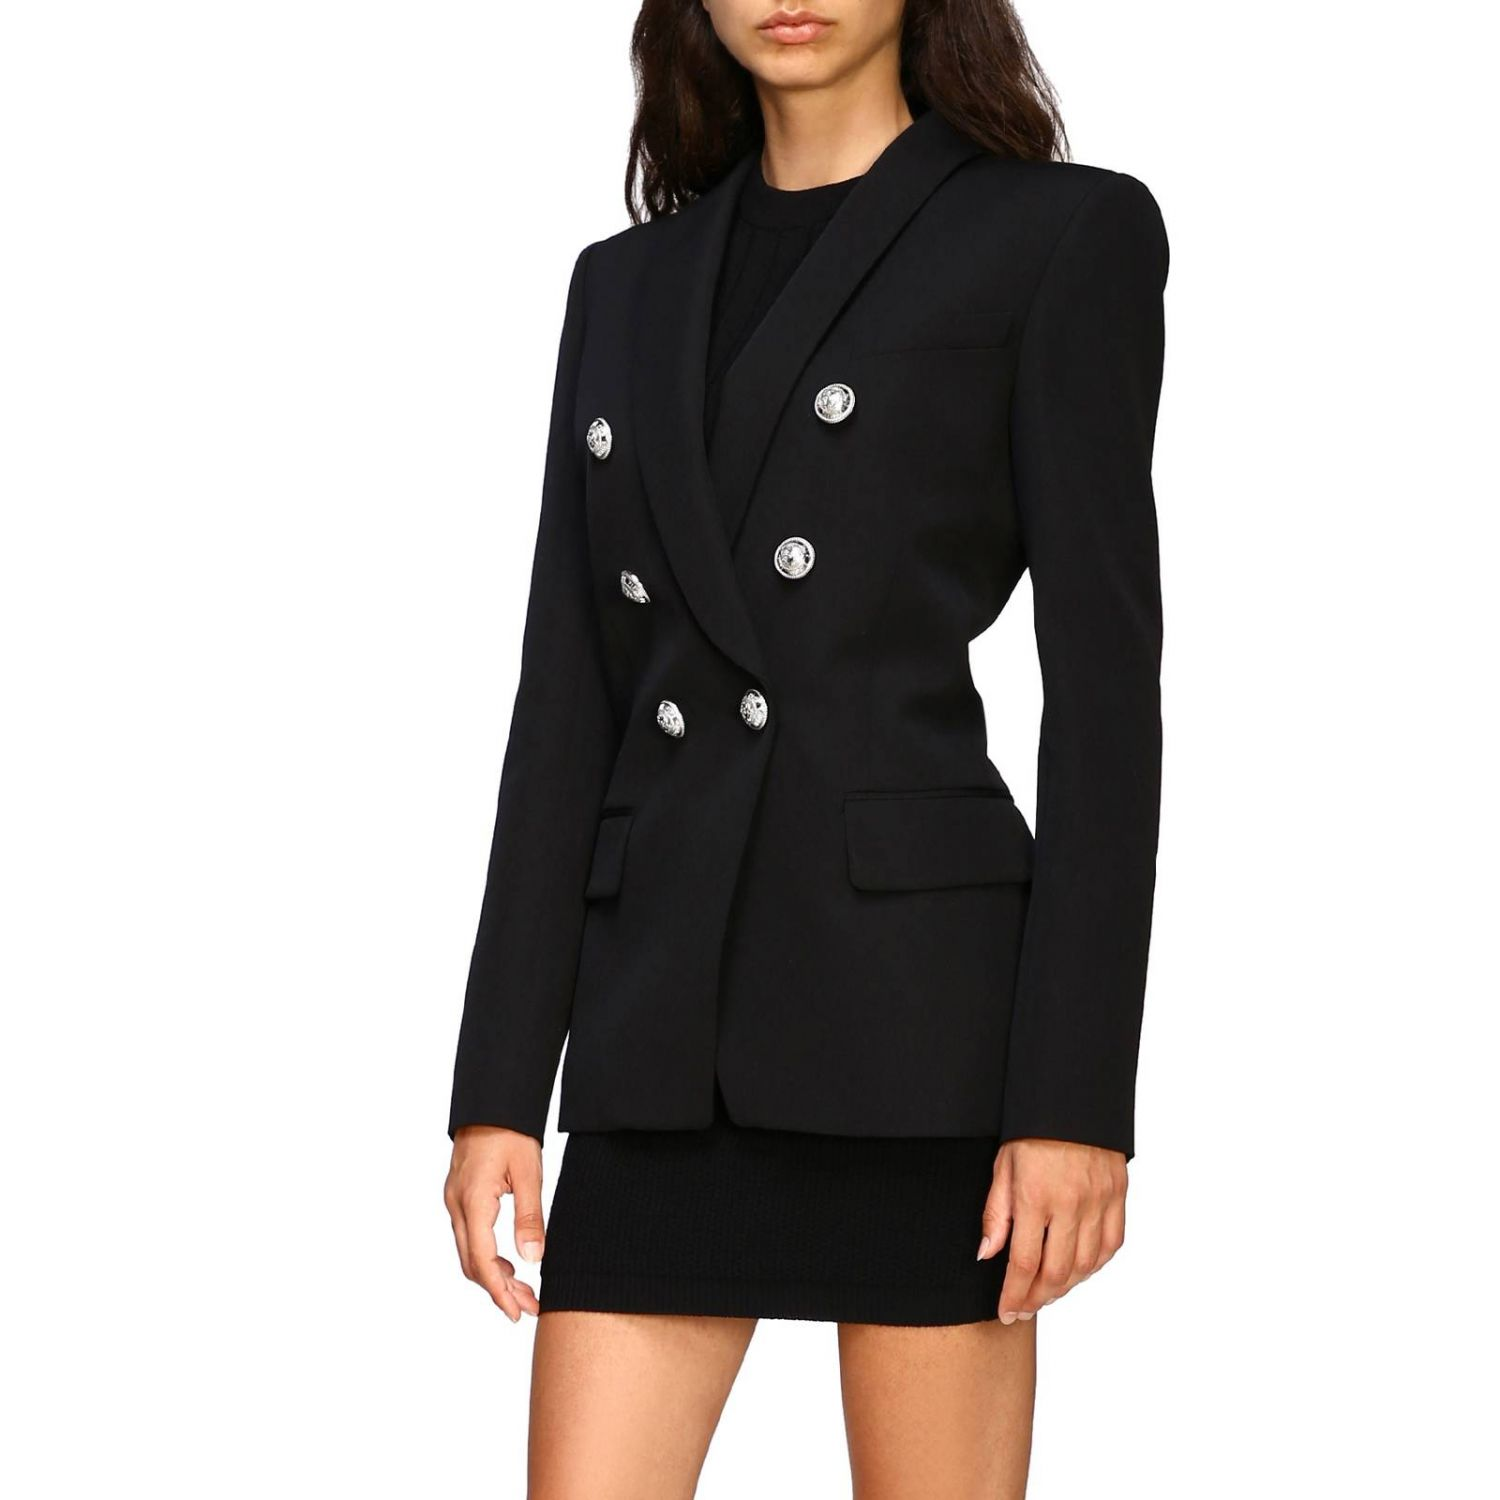 Balmain double-breasted blazer with jewel buttons black 4